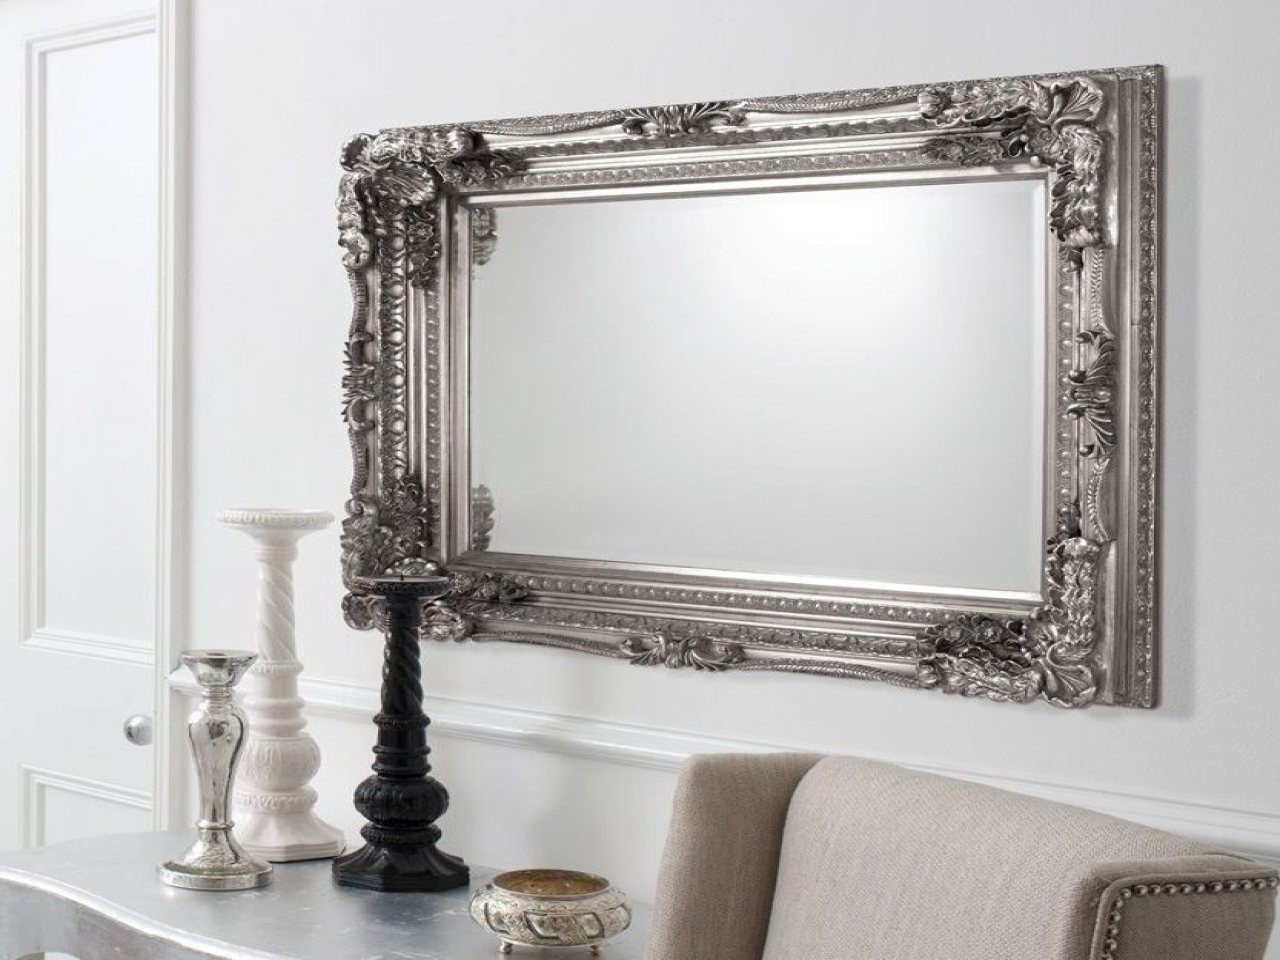 Wall Mirrors Images Carved Ornate Framed Silver Wall Mirror For Silver Ornate Framed Mirror (Image 15 of 15)